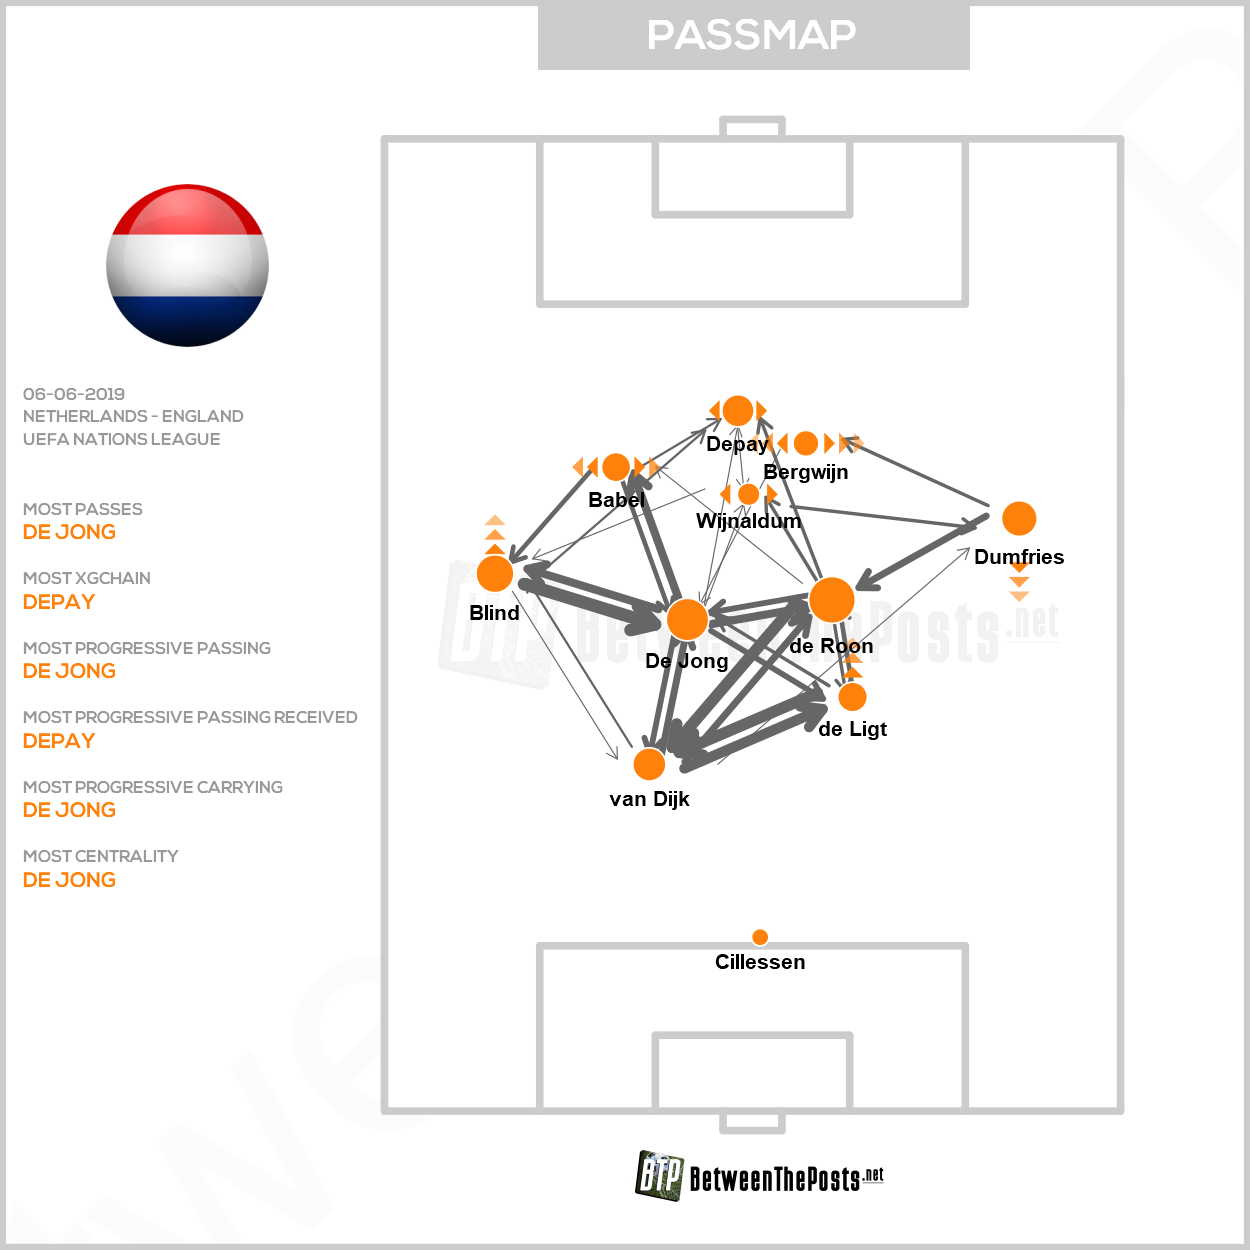 Passmap Netherlands England 3-1 Nations League